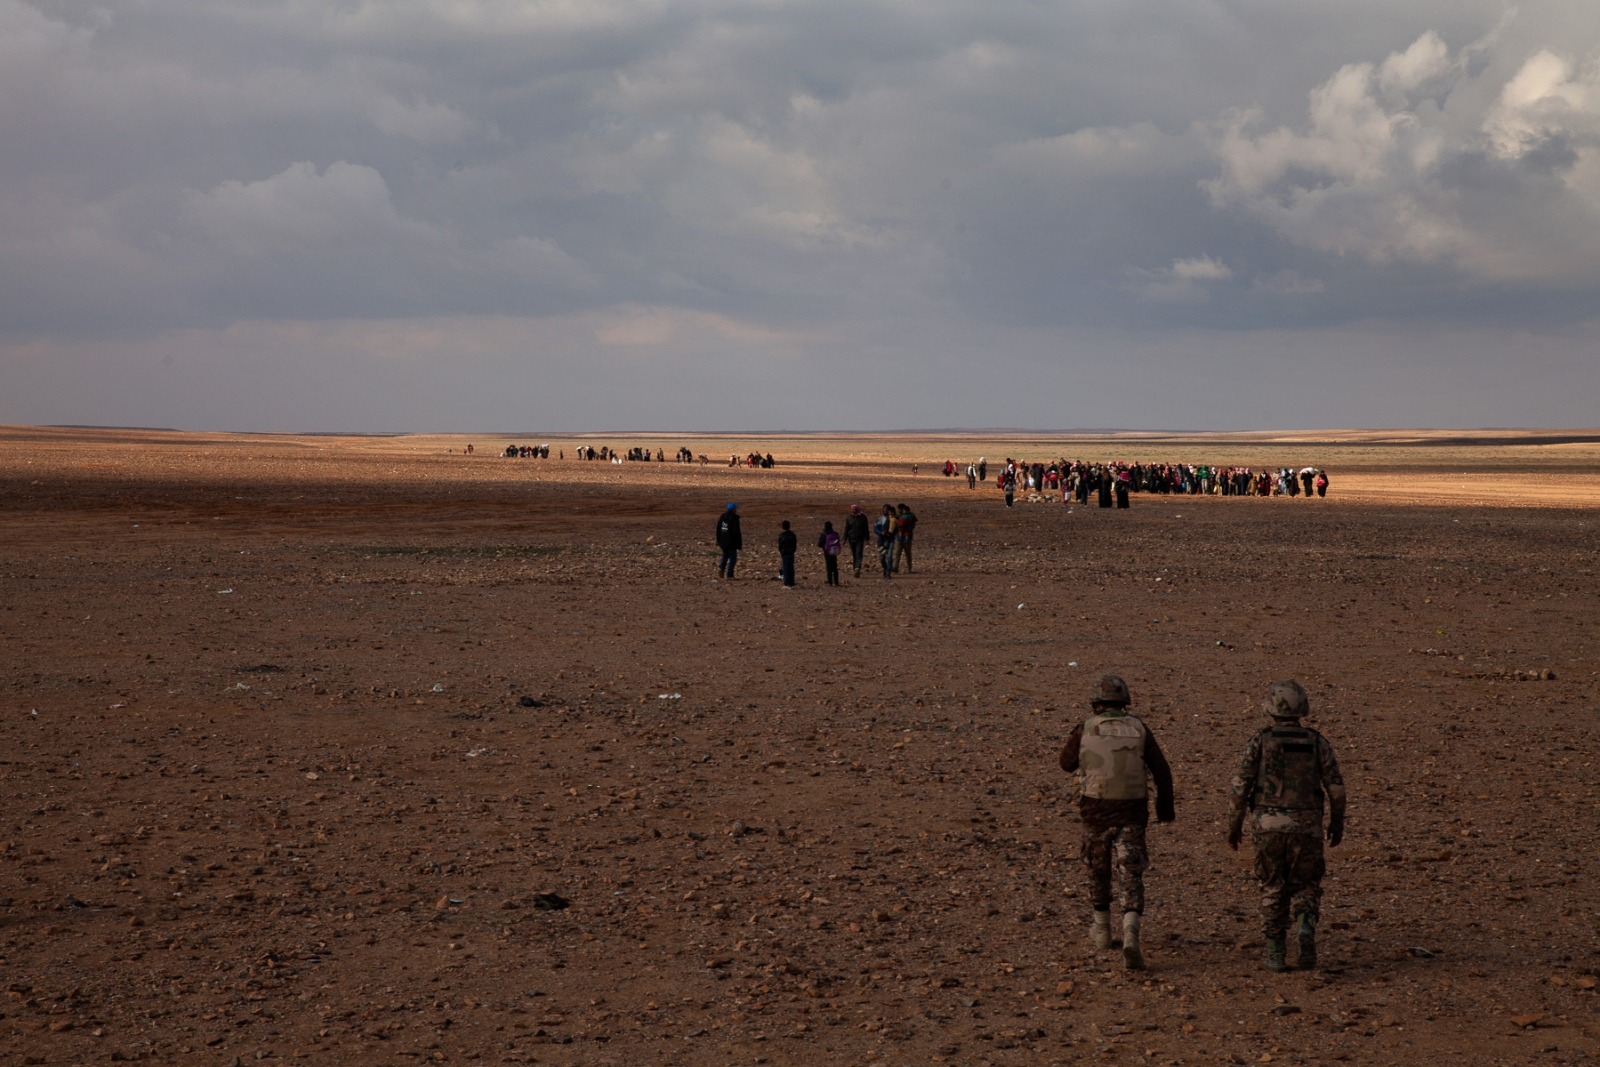 Jordanian troops prepare to help several hundred refugees crossing over the no man's land between Syria and Jordan. Over a thousand refugees crossed into Jordan that afternoon at a border crossing known as Al Hadalat,